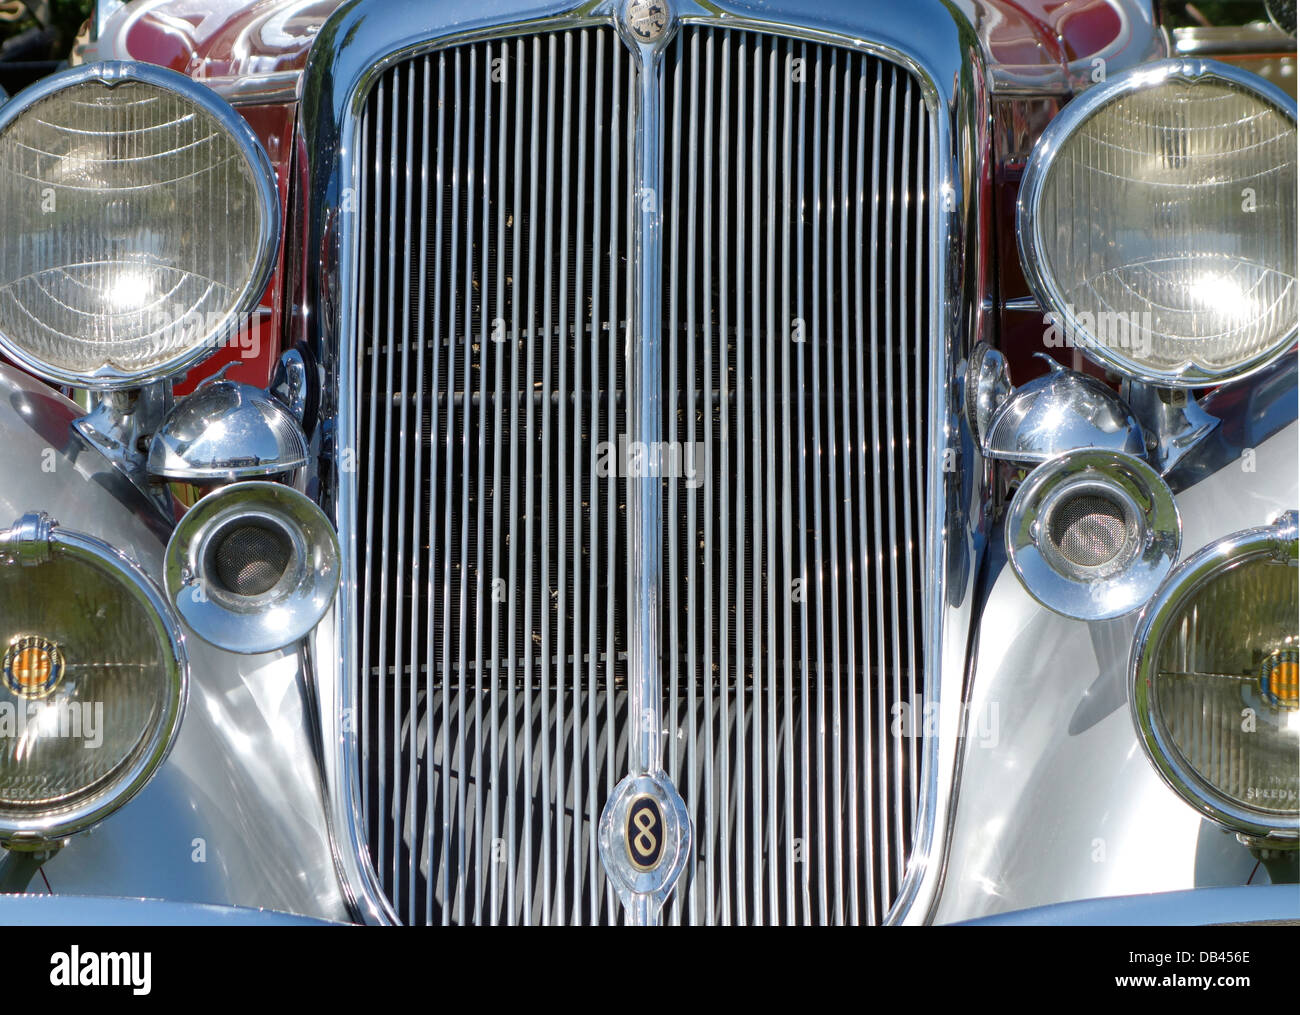 Front view on grills and headlights of antique convertible automobile Chrysler Imperial from early 1930es - Stock Image